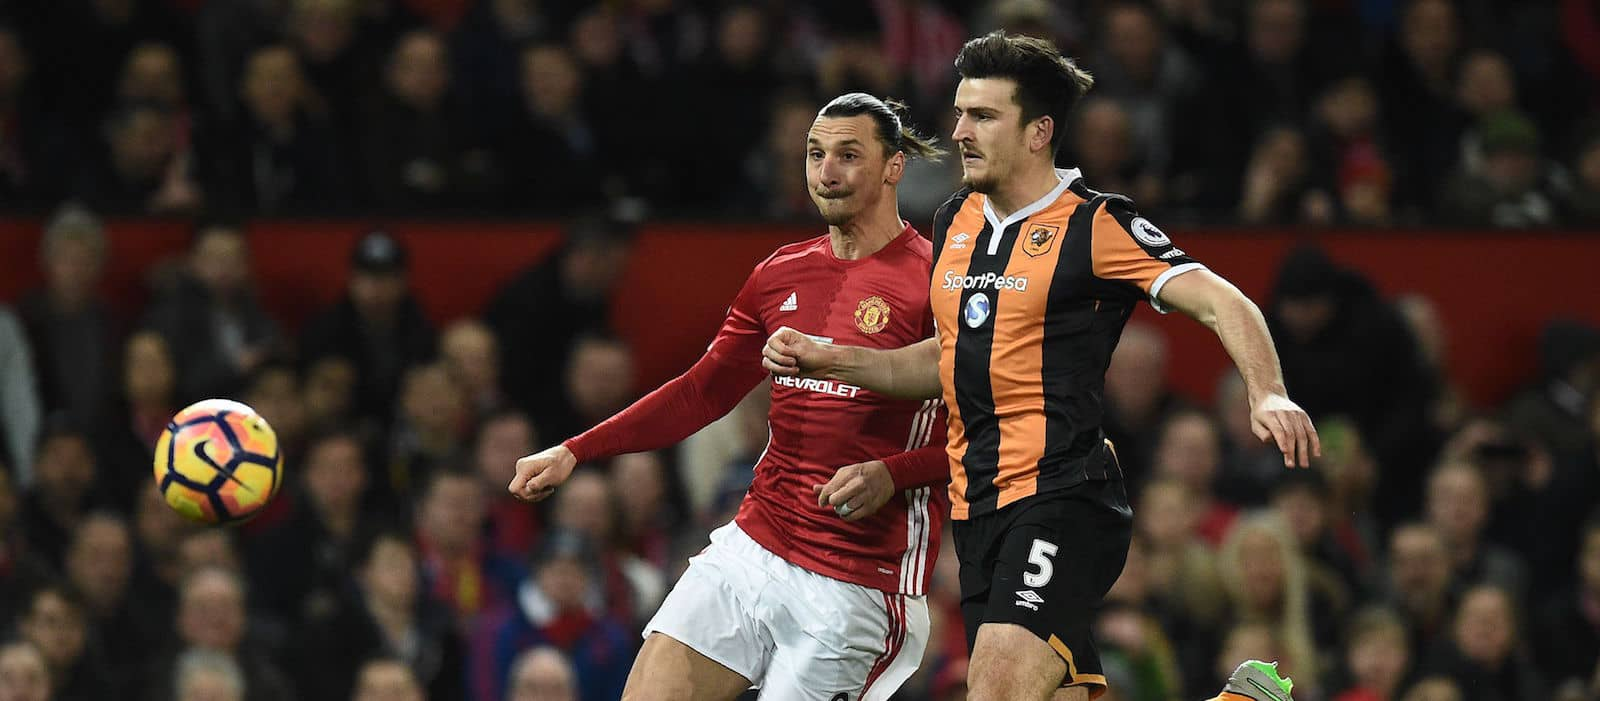 Man United fans furious with Zlatan Ibrahimovic's display against Hull City